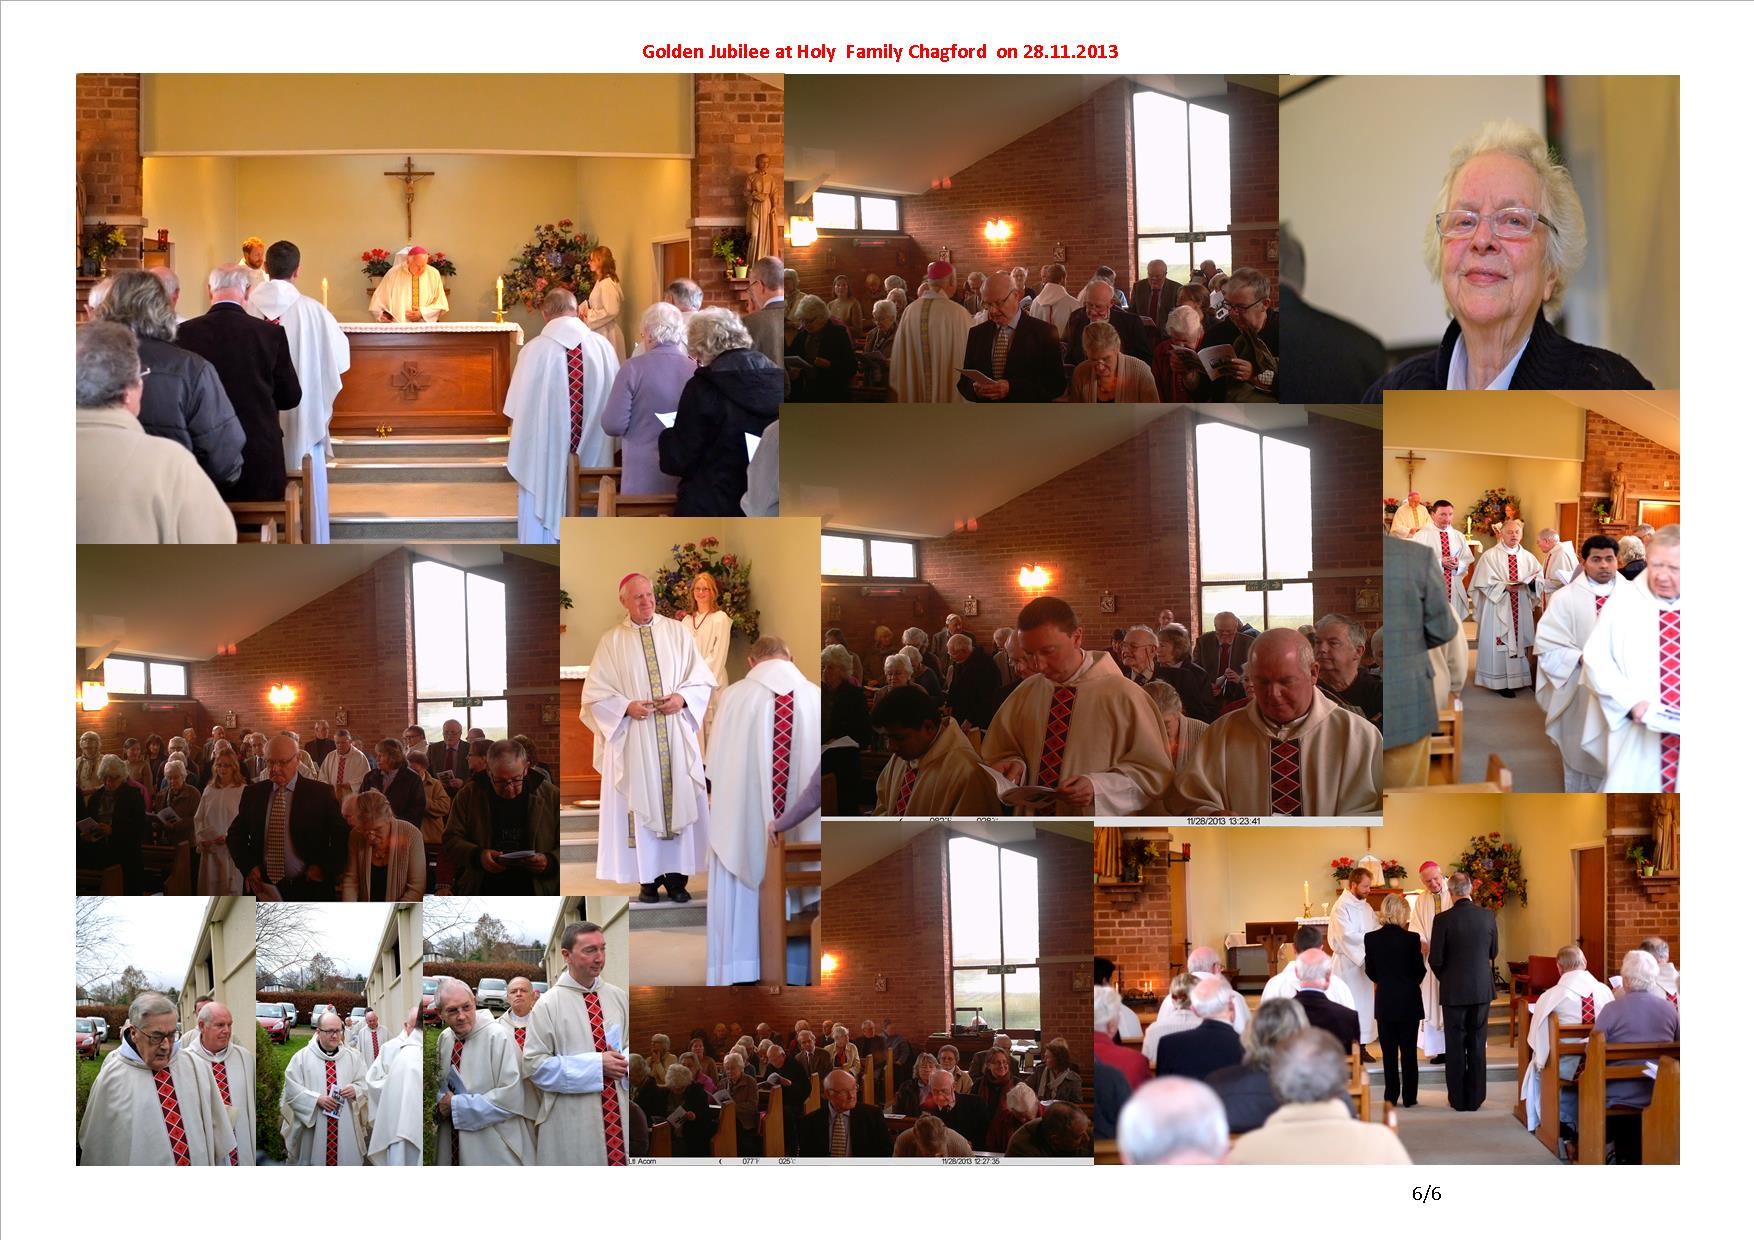 jubilee-celebration-at-holy-famil-chagford-28-11-2013